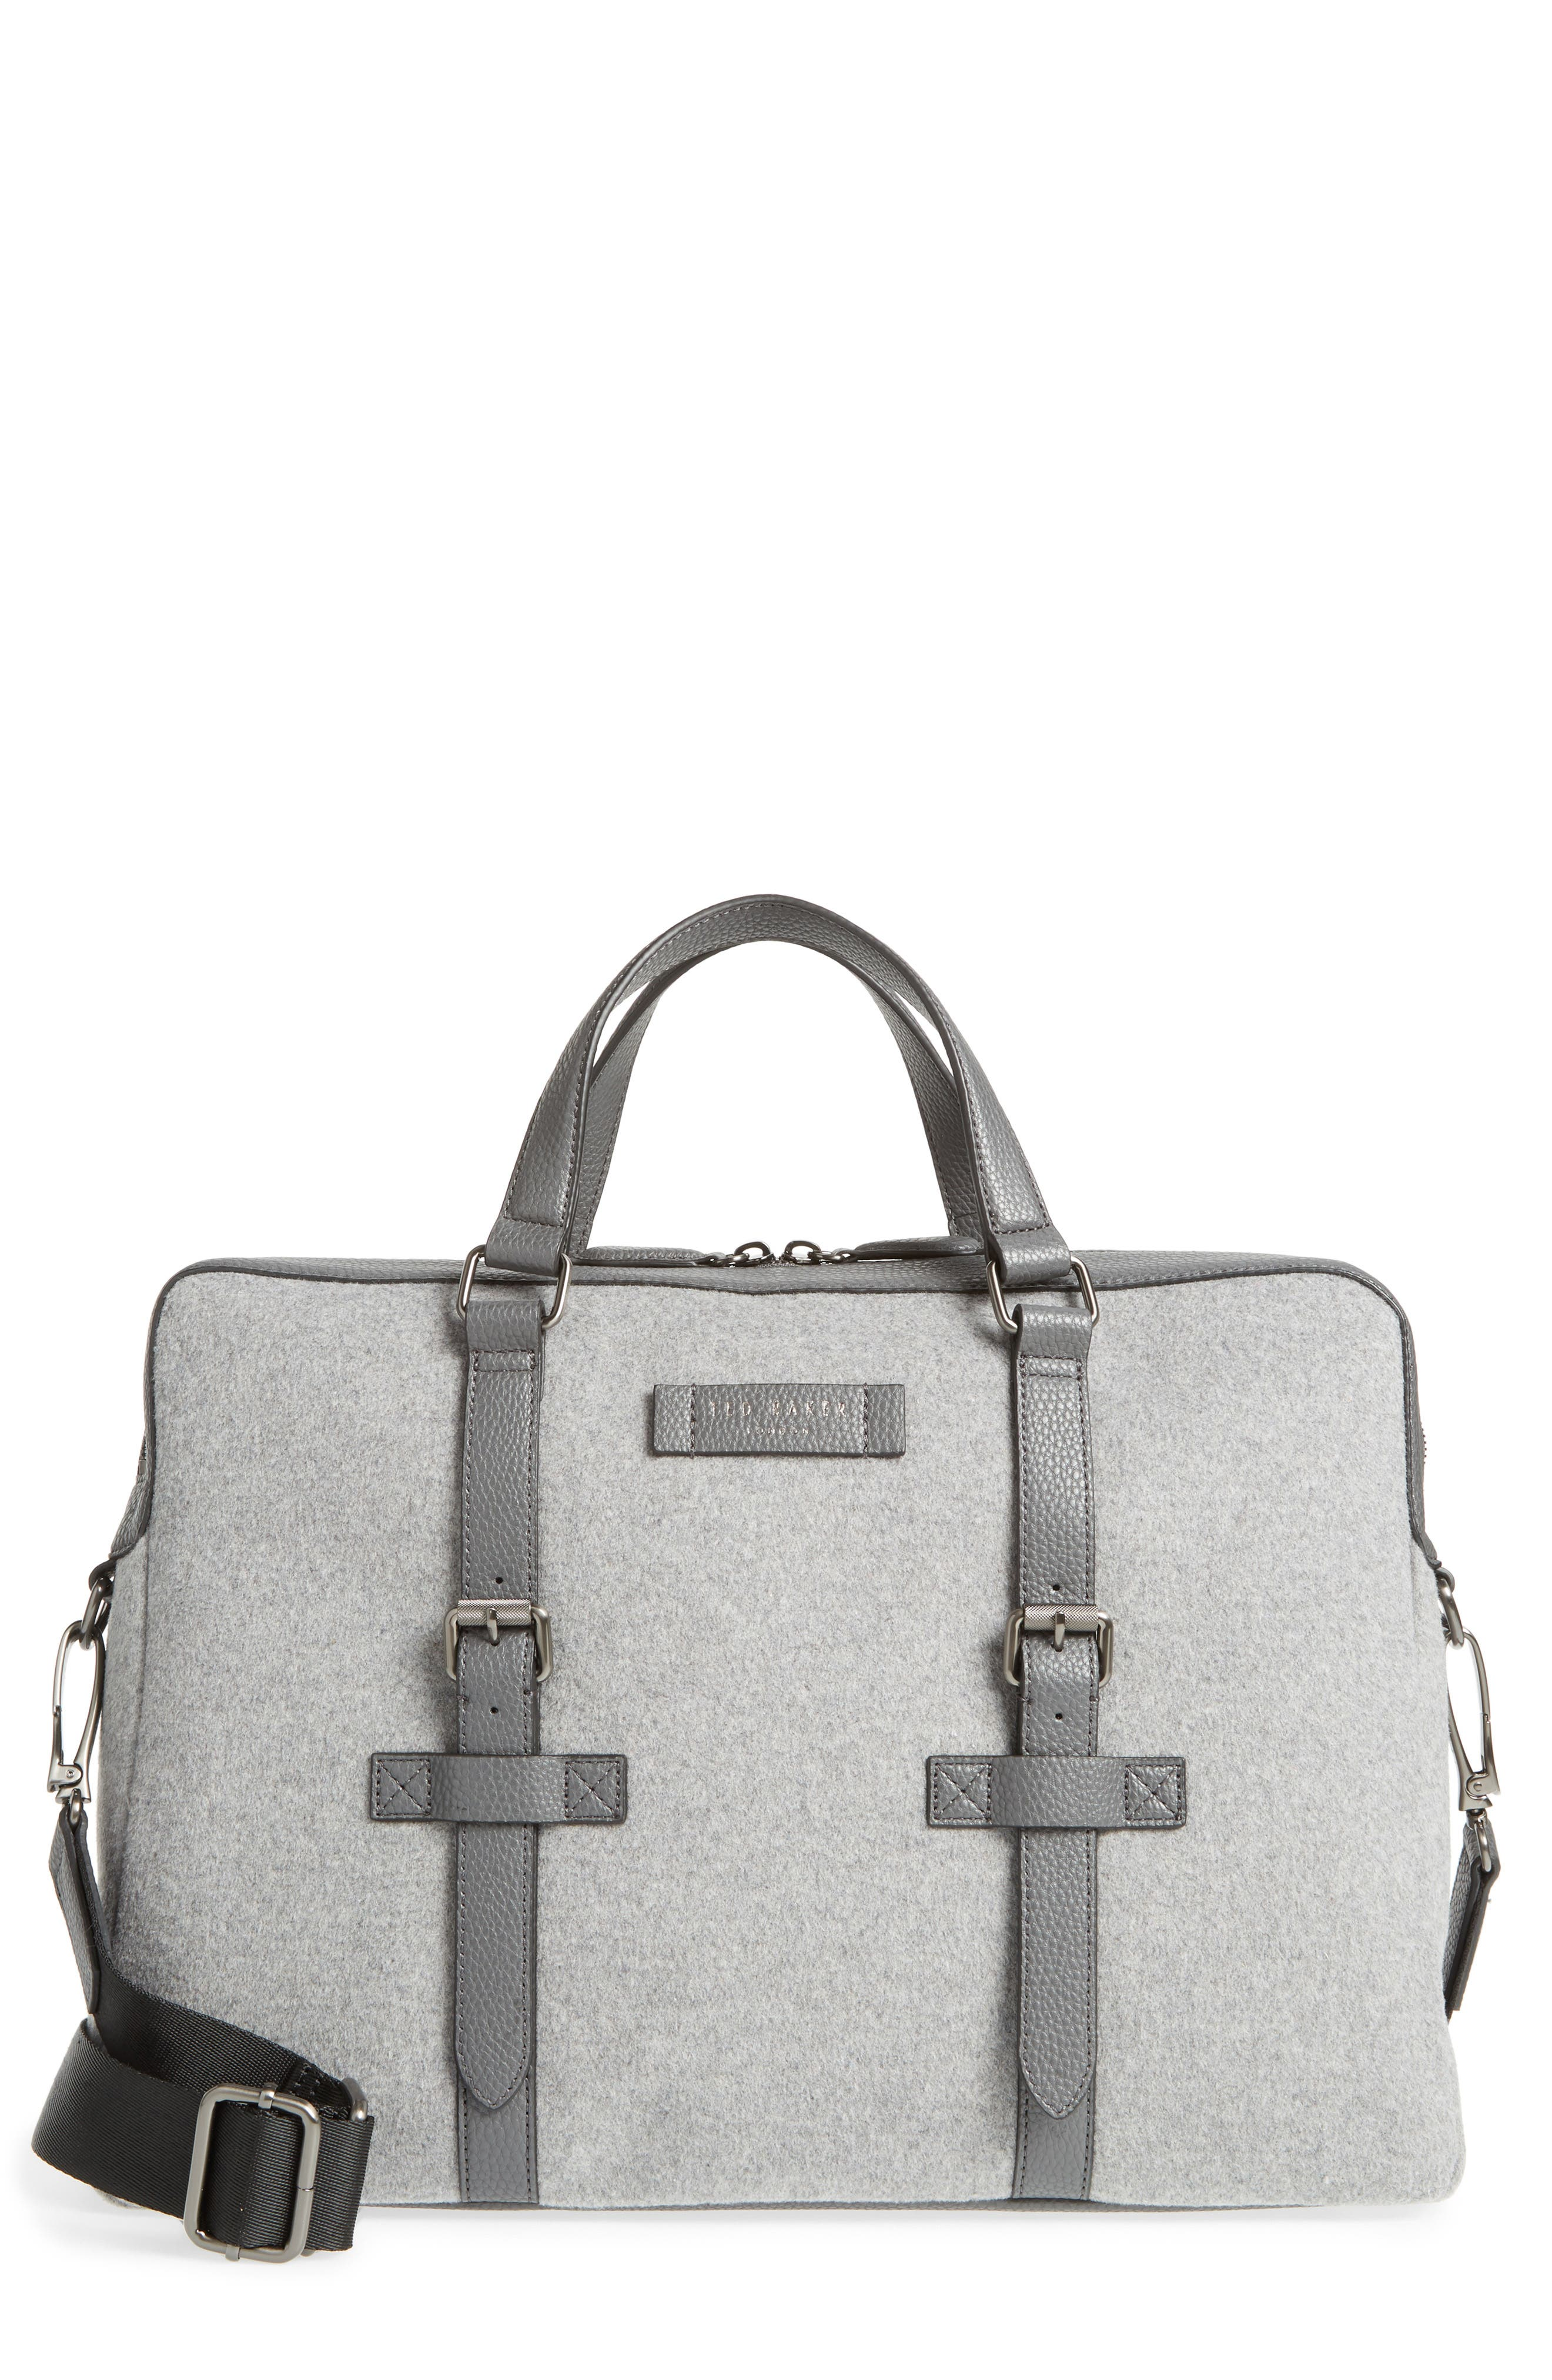 TED BAKER LONDON Cabble Briefcase, Main, color, 030